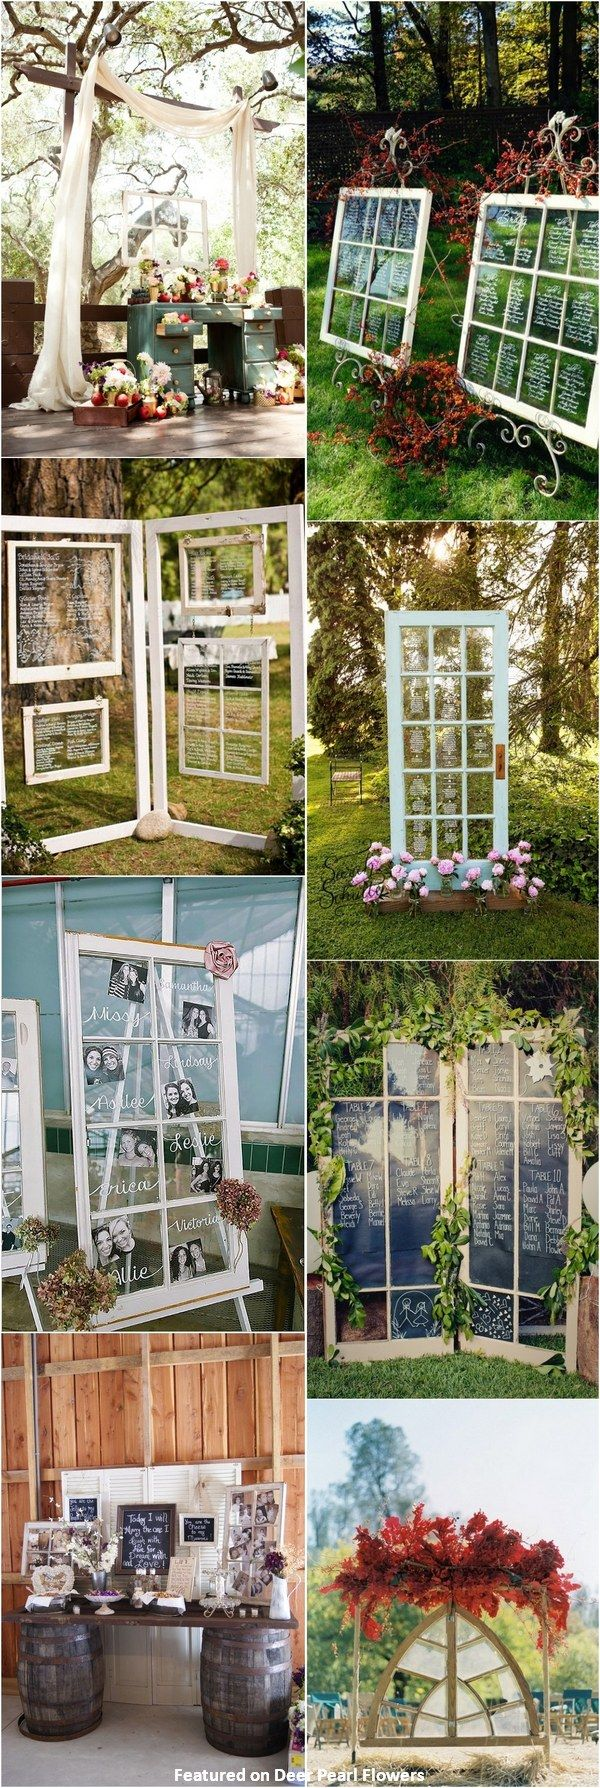 vintage rustic old window wedding decor ideas / http://www.deerpearlflowers.com/diy-window-wedding-ideas/